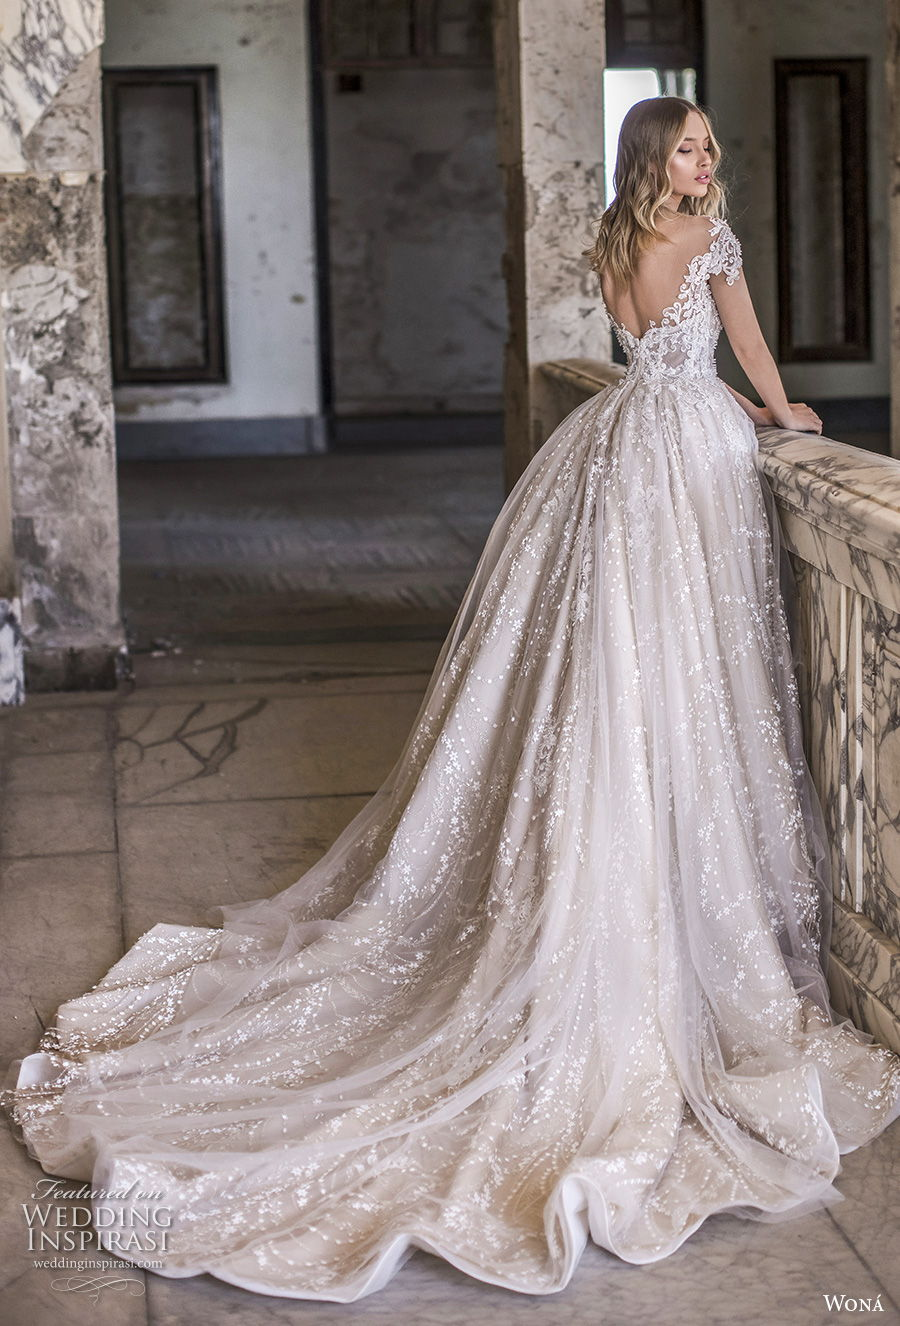 wona 2020 couture bridal cap sleeves sweetheart neckline full embellishment romantic princess ball gown a  line wedding dress backless chapel train (2) bv